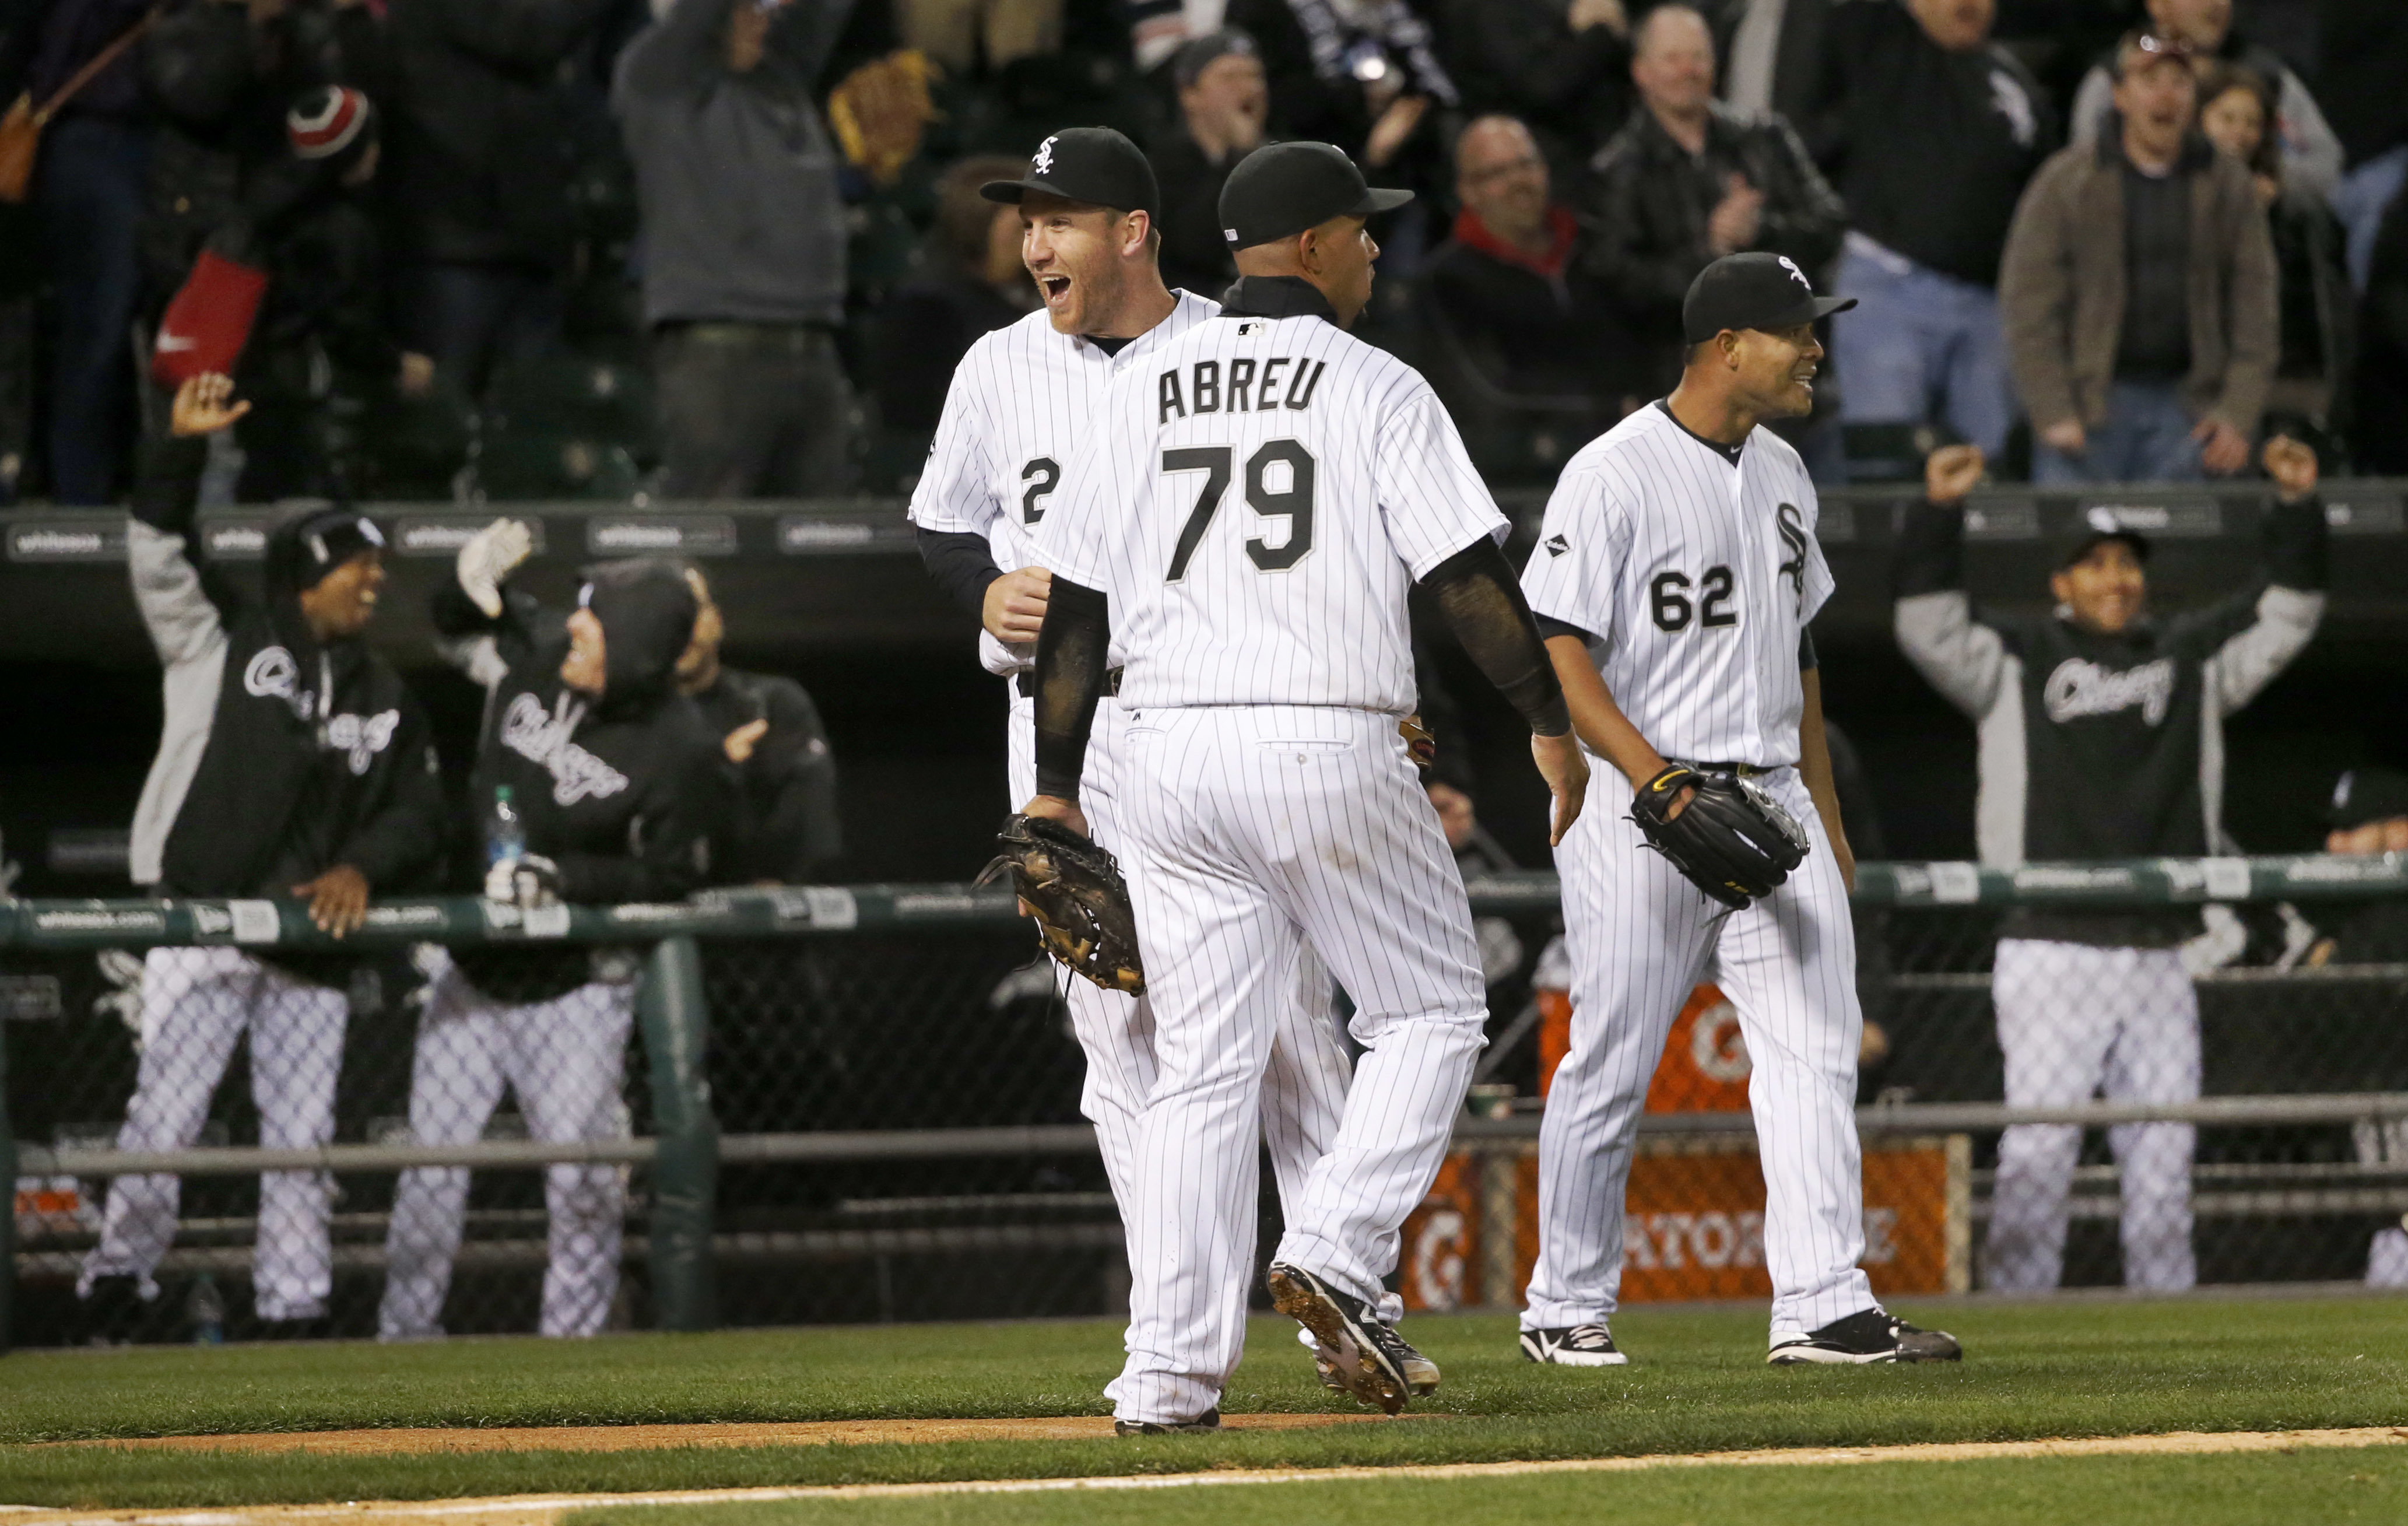 Chicago White Sox players celebrate after converting a triple play with the bases loaded during the seventh inning of a baseball game against the Texas Rangers, Friday, April 22, 2016, in Chicago. (AP Photo/Charles Rex Arbogast)